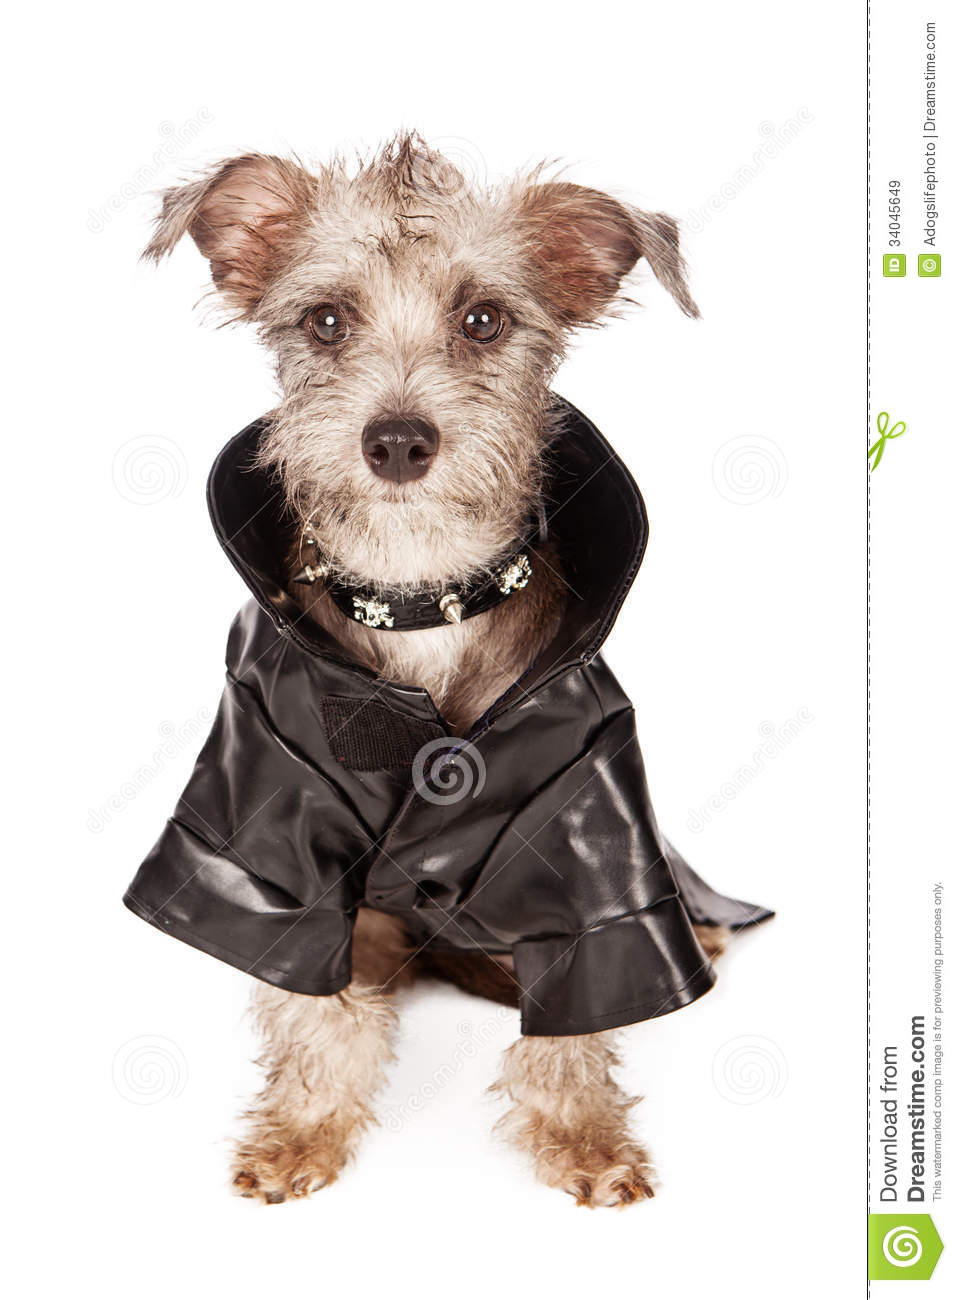 Leather jacket for dogs - Here You Go